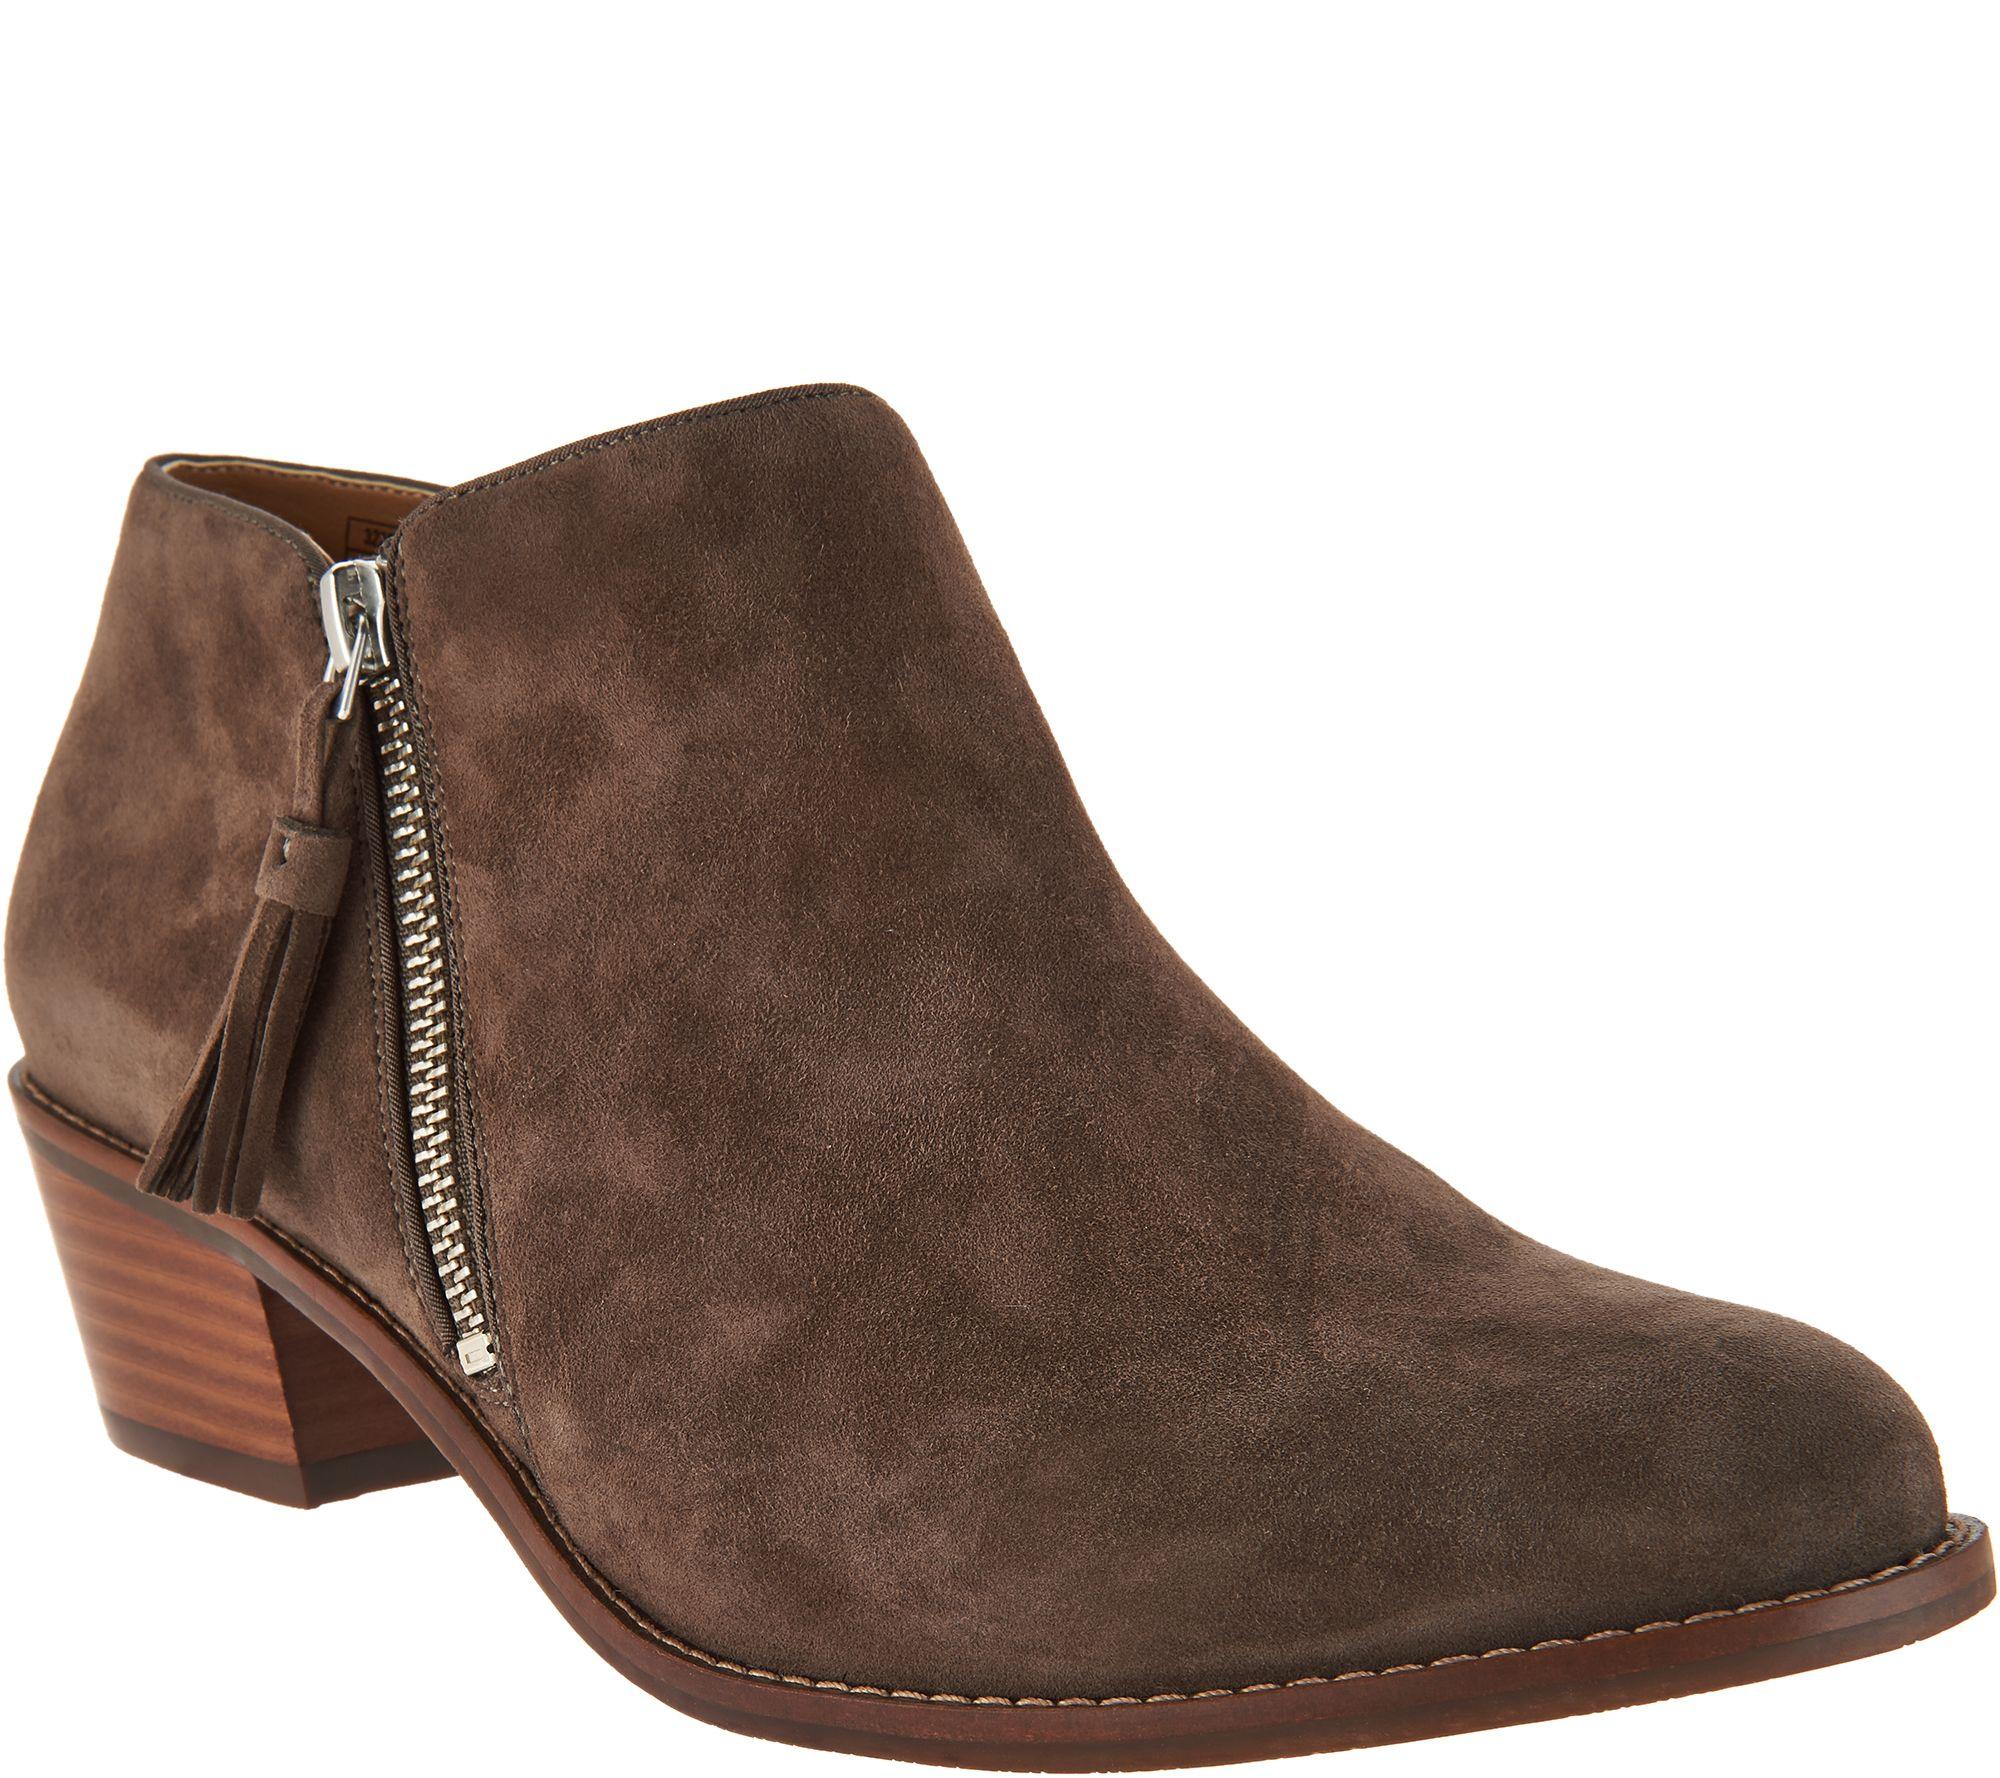 Boot Boutique — Women\'s Boots & Fashion Boots — QVC.com